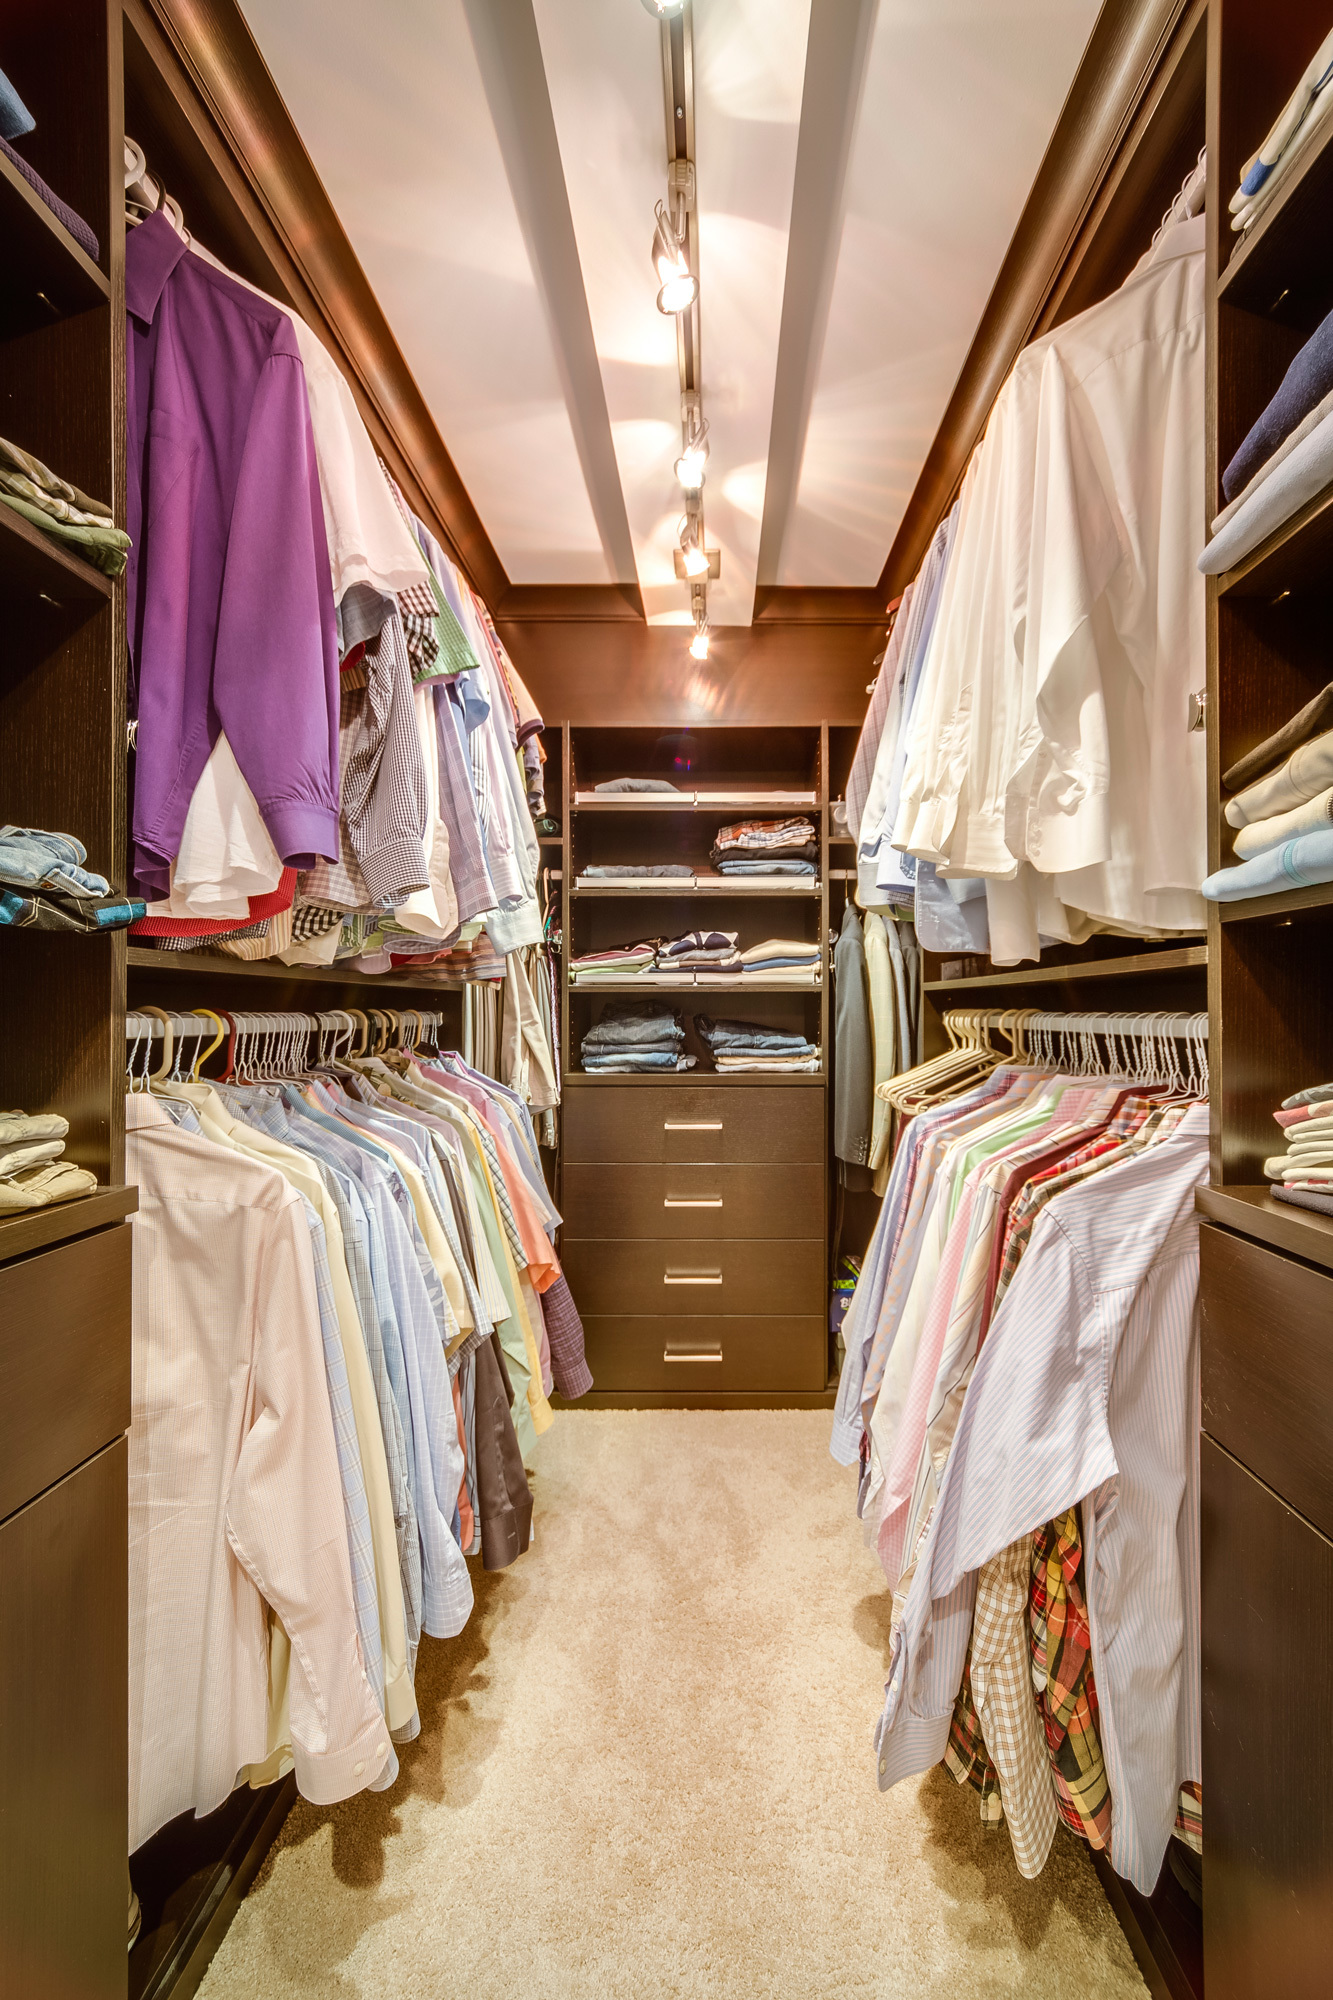 filled walk in closet with built in shelving and drawers and multilevel hangin rods